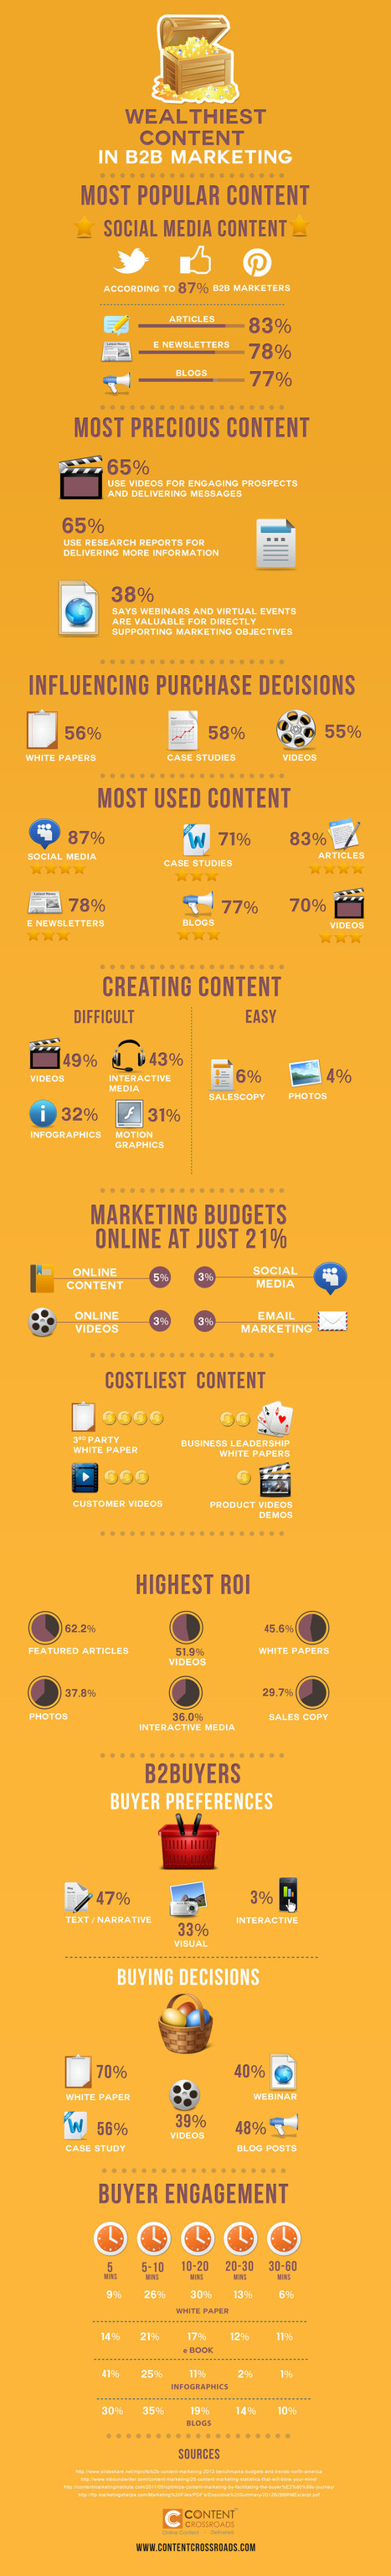 The Most Profitable Content in B2B Marketing [Infographic] - Business 2 Community | Marketing Matters | Scoop.it